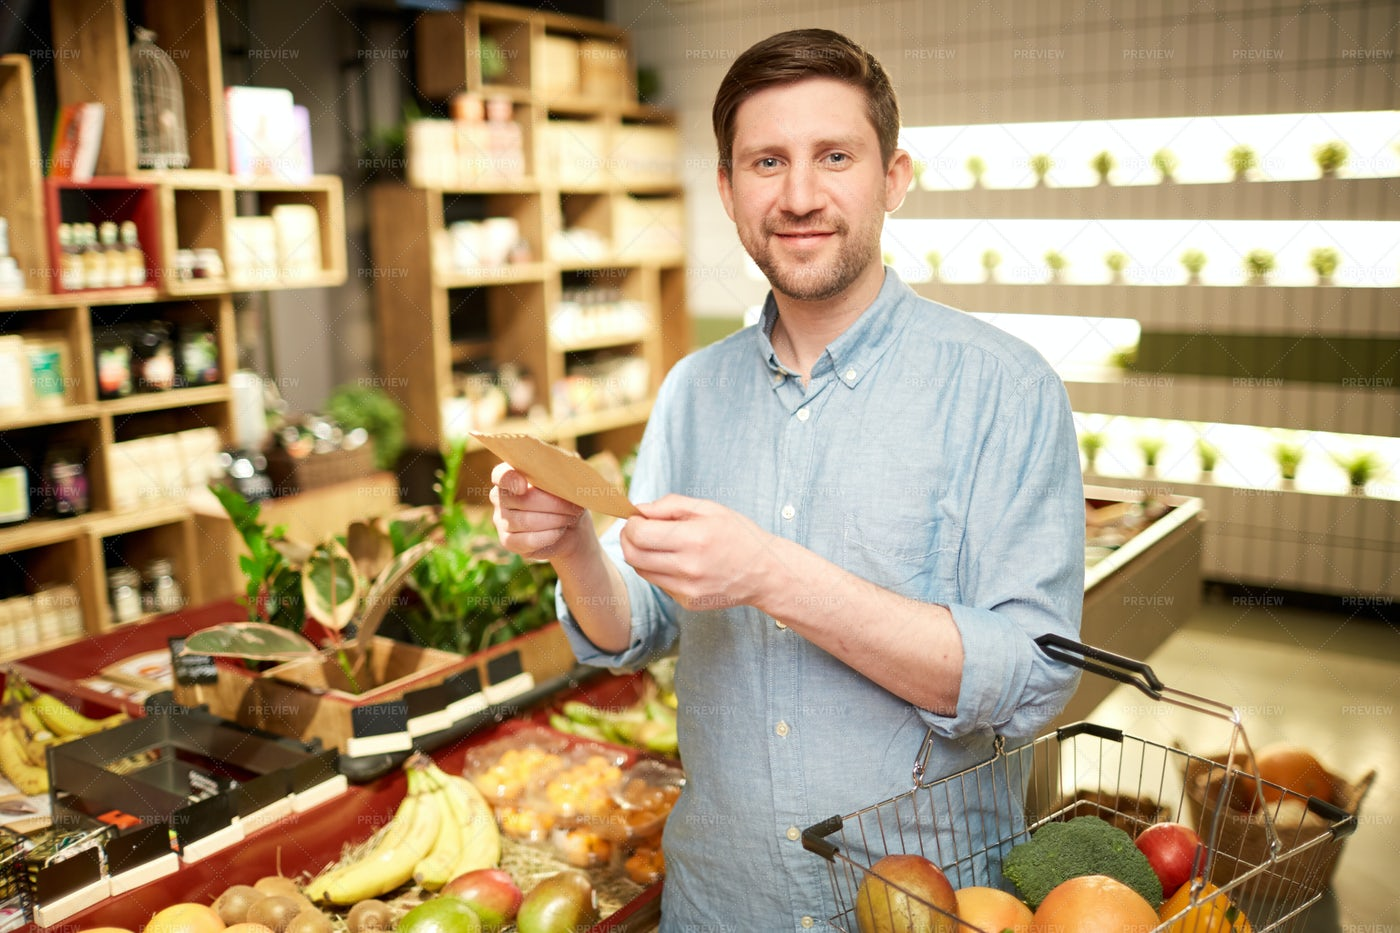 Buying Fruits And Vegetables: Stock Photos